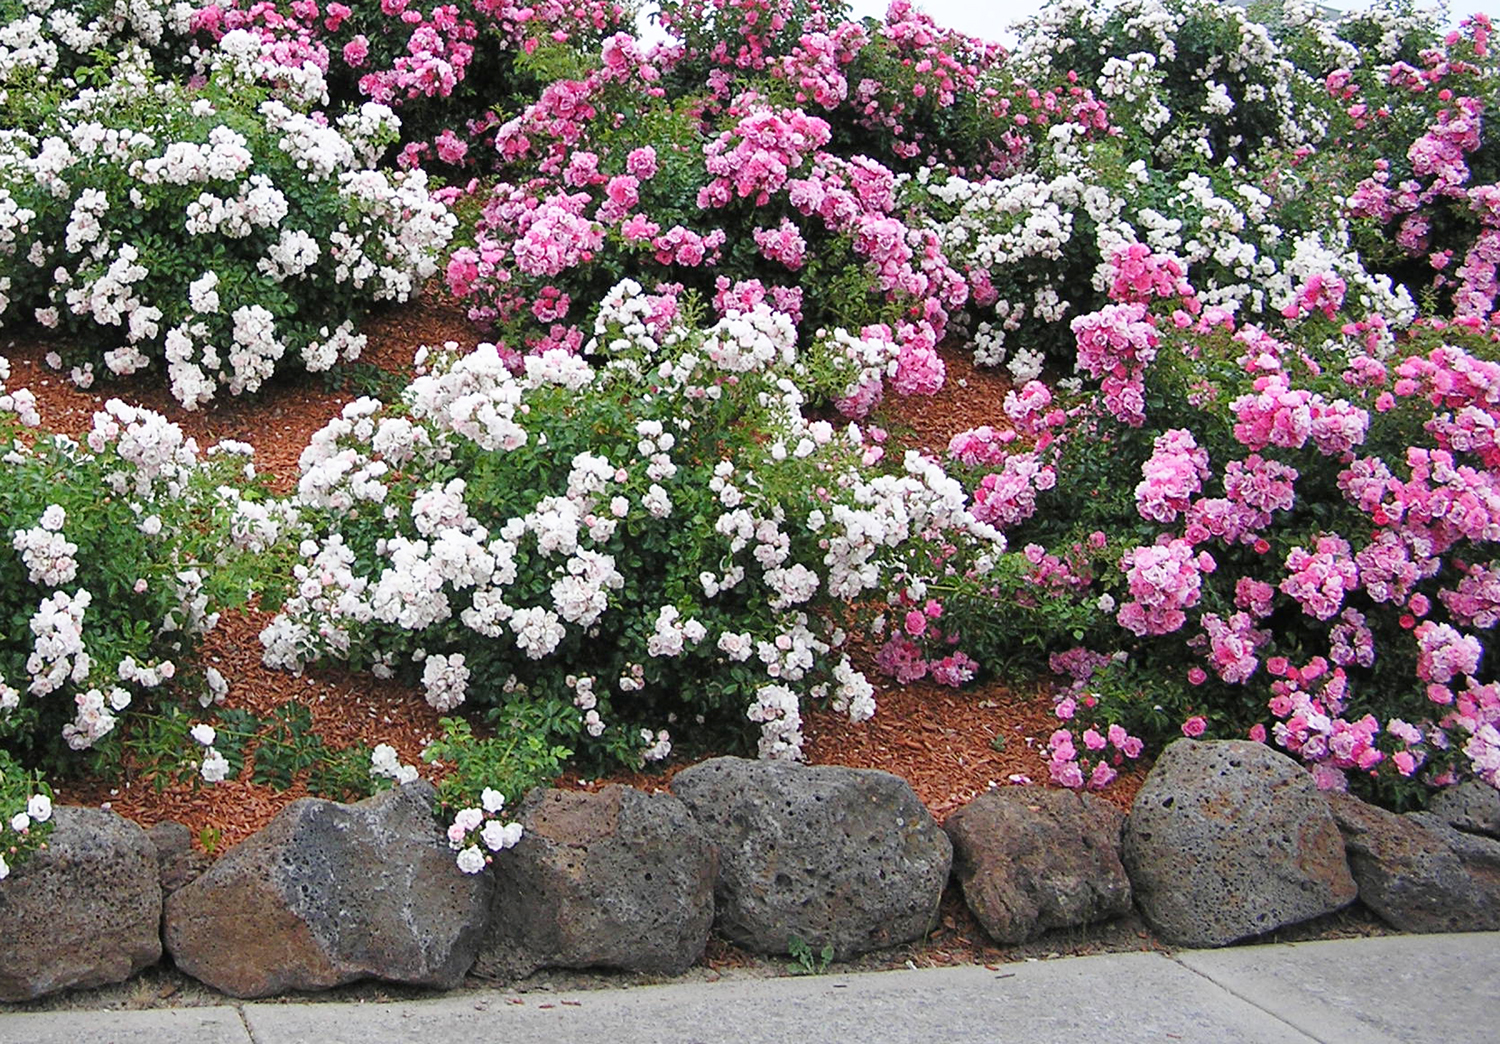 Roses and a garden bed